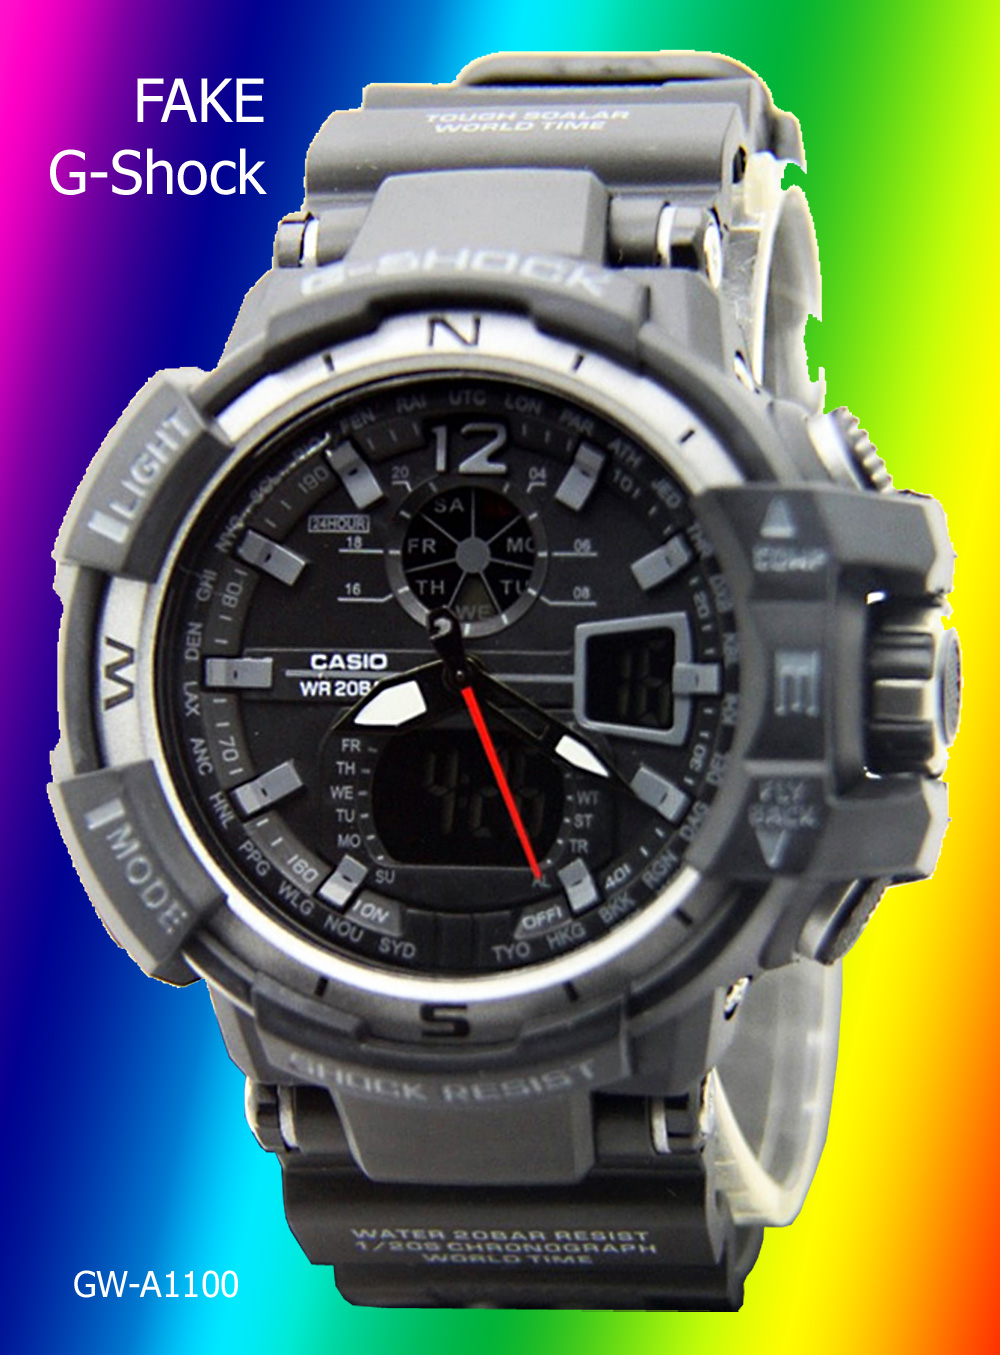 fake g shock watches wrist watch spot